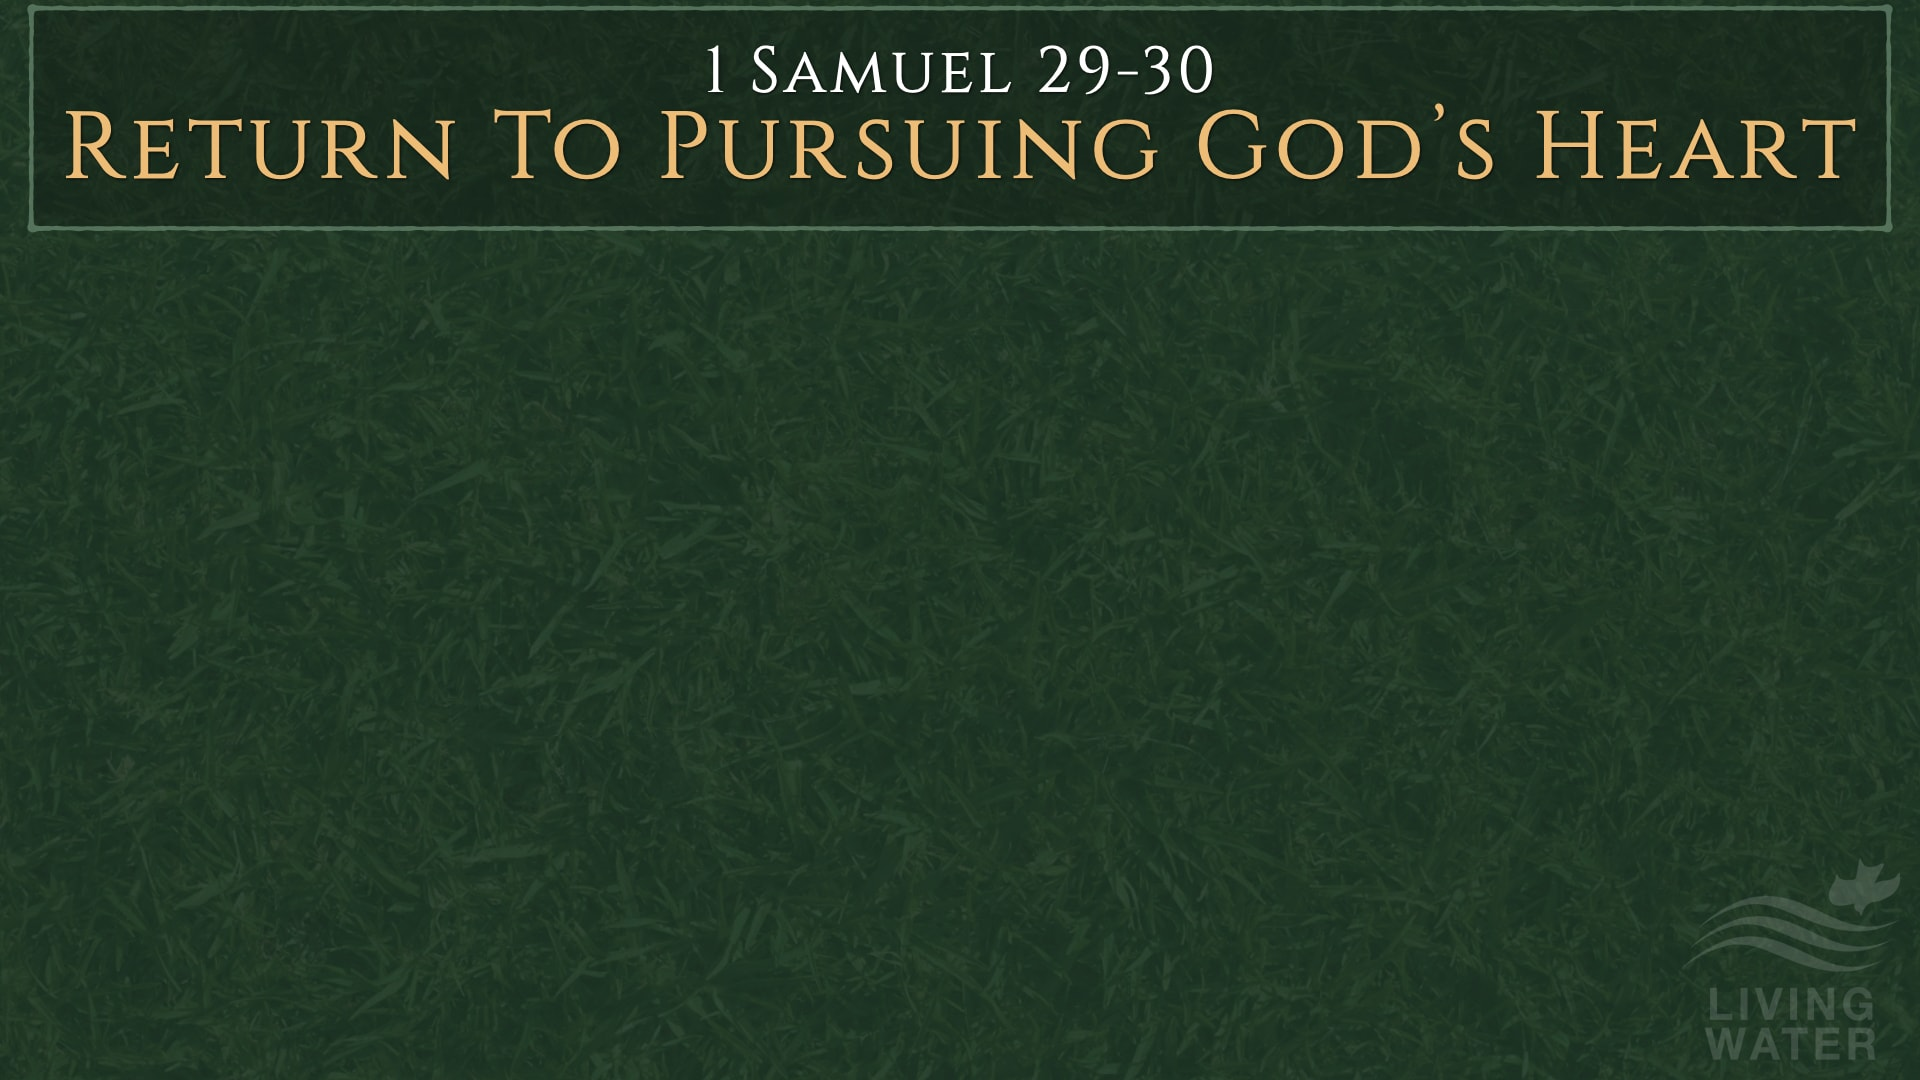 1 Samuel 29-30, Return To Pursuing God's Heart